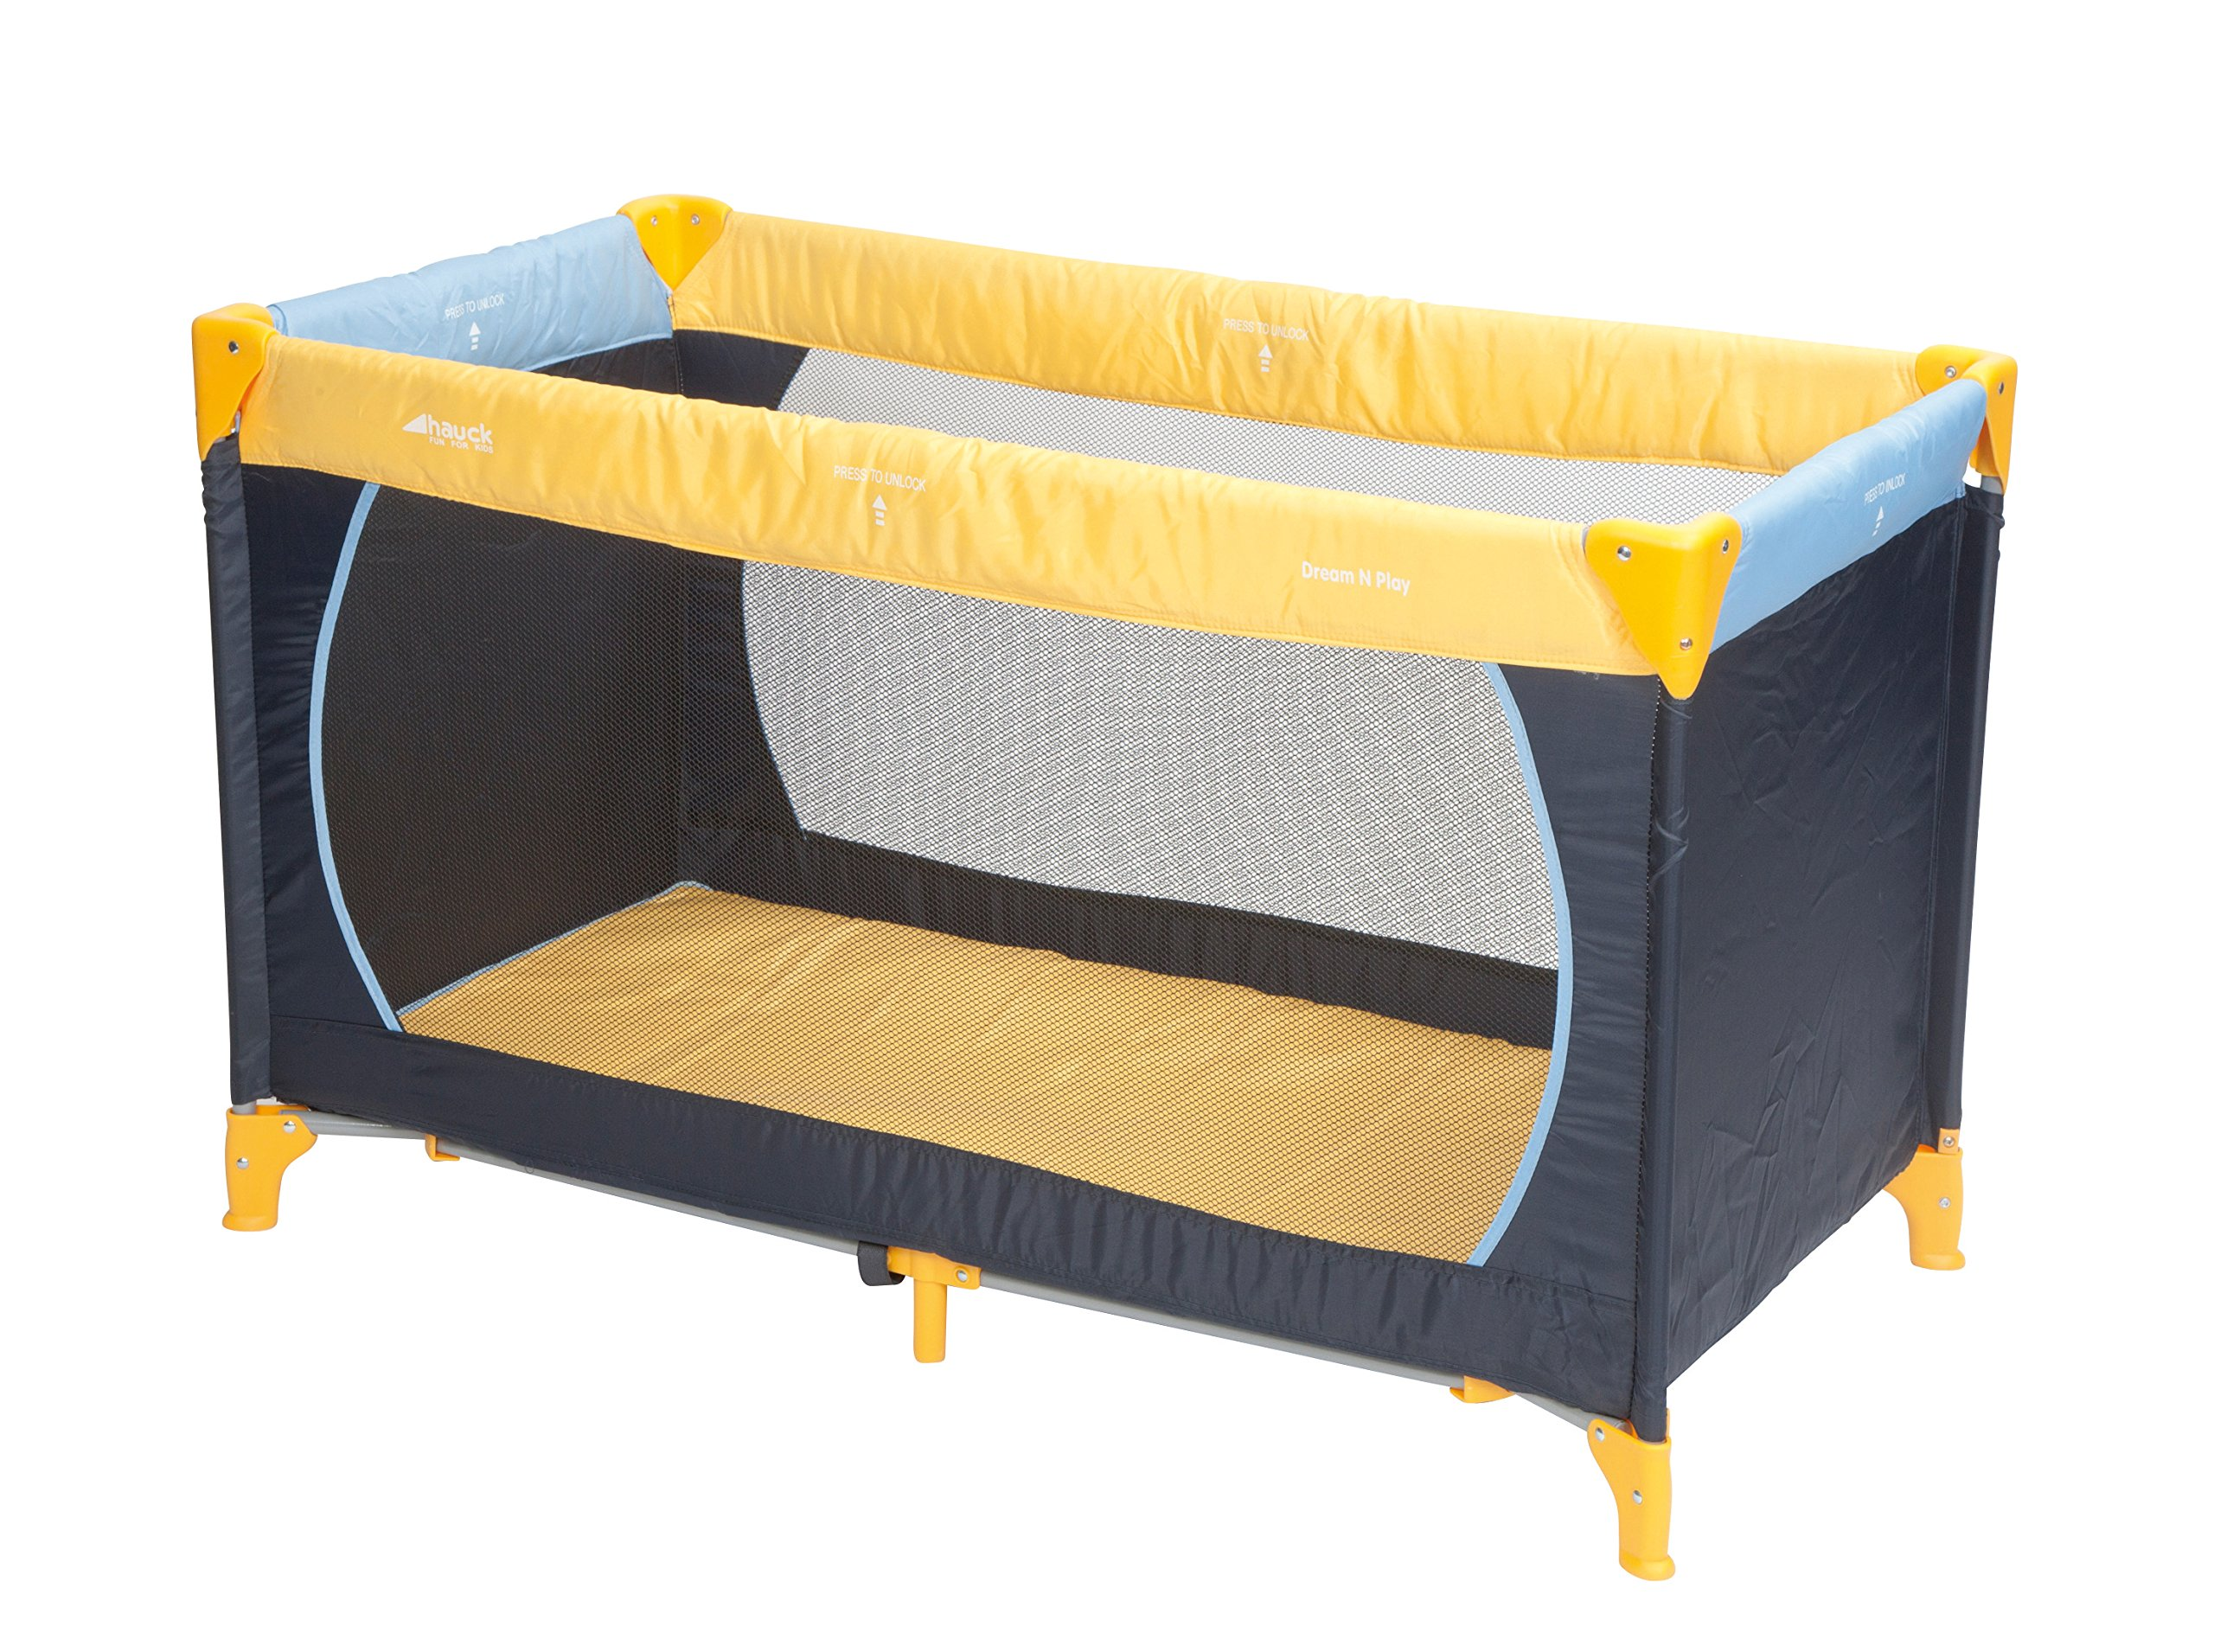 Portable Hauck Travel Cot Bed Sleep Play Pen Infant Baby